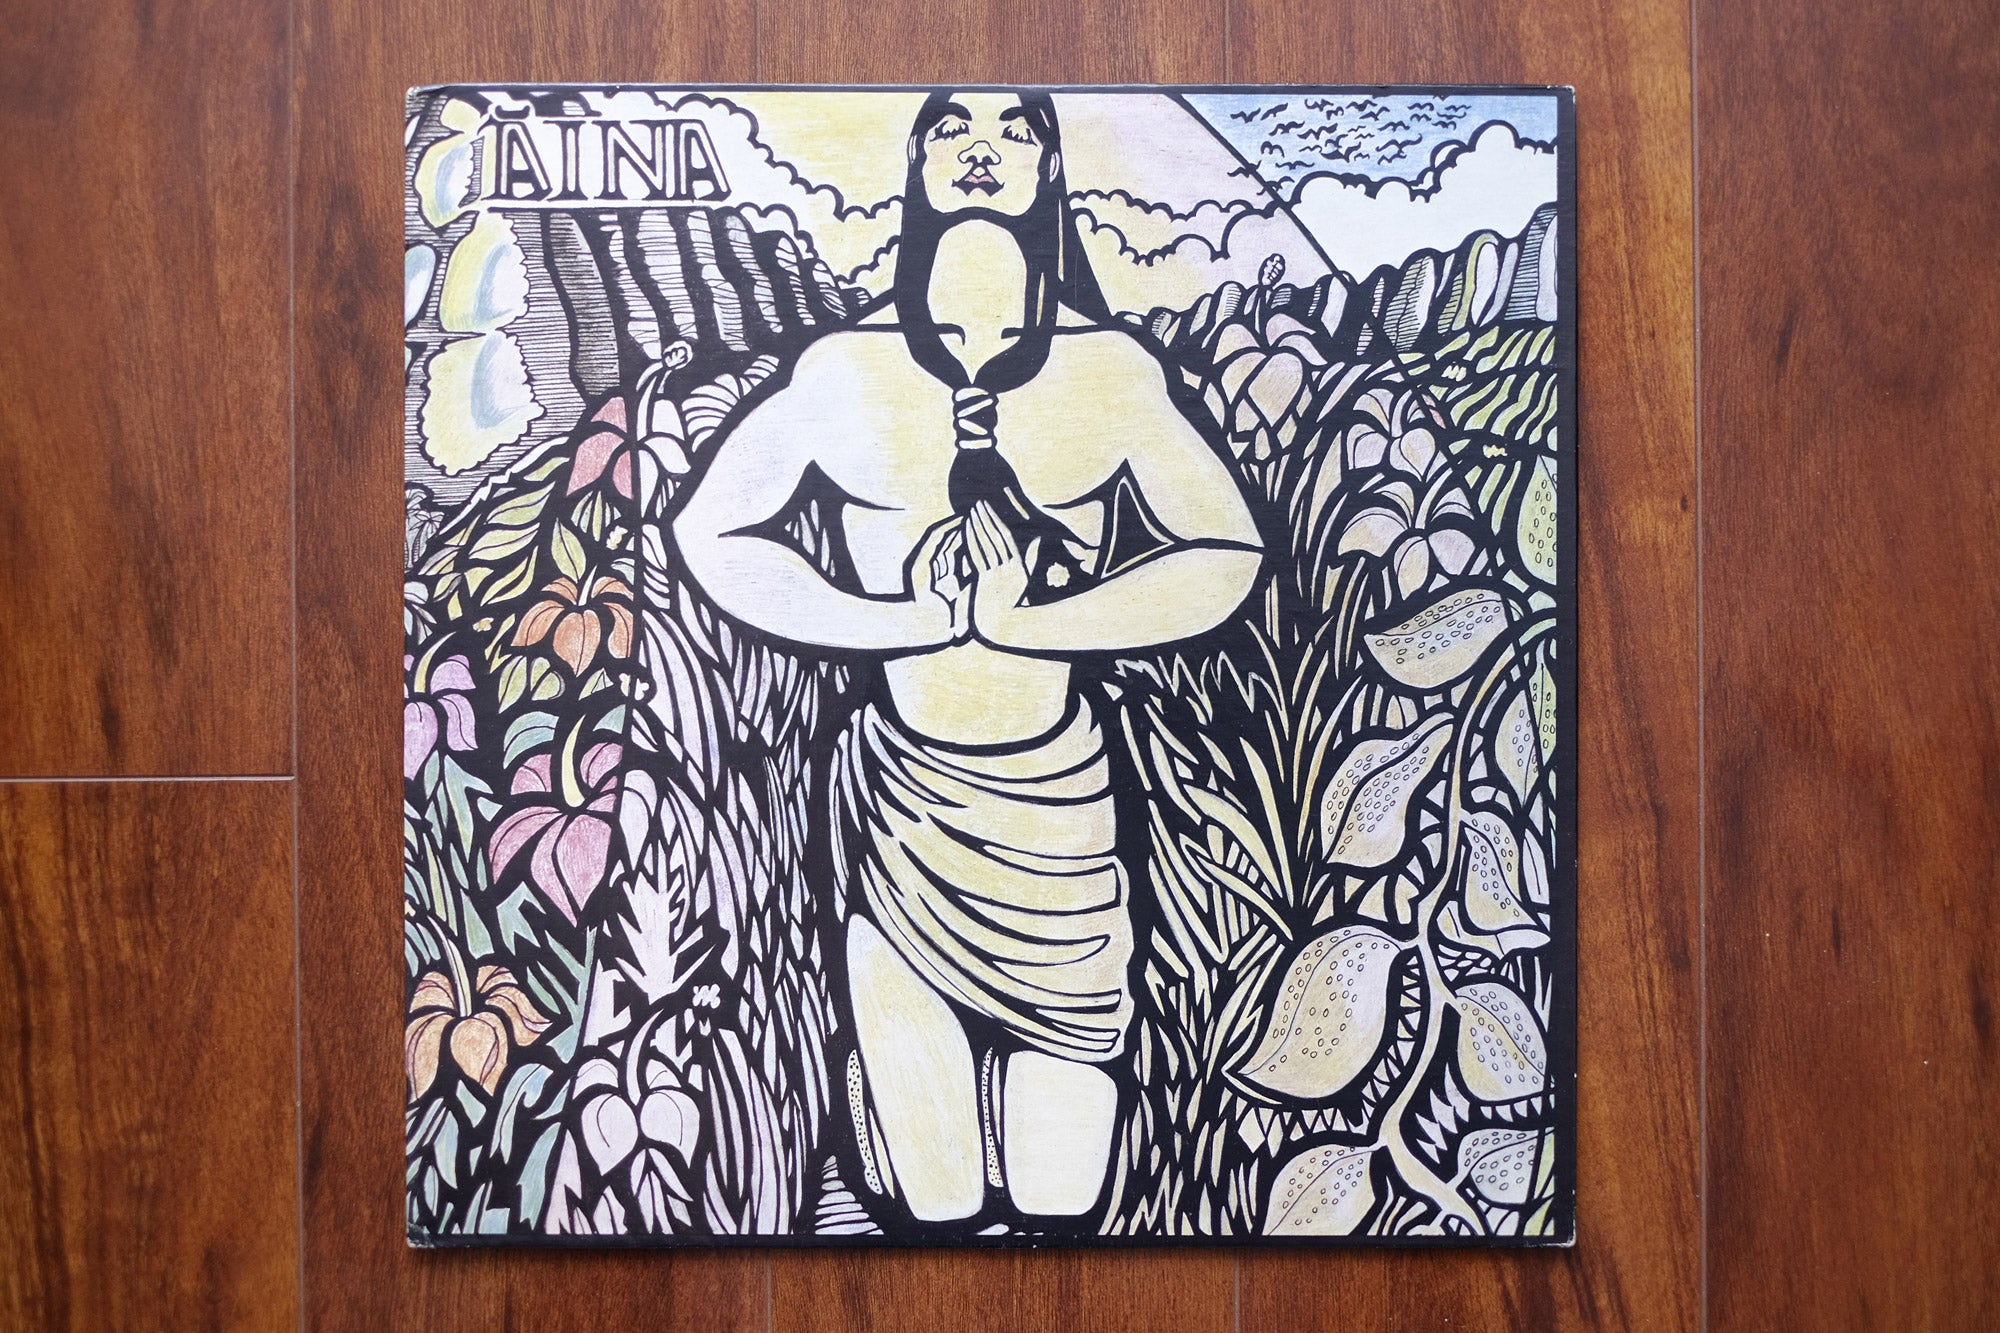 Aina-Lead-Me-To-The-Garden-LP-cover